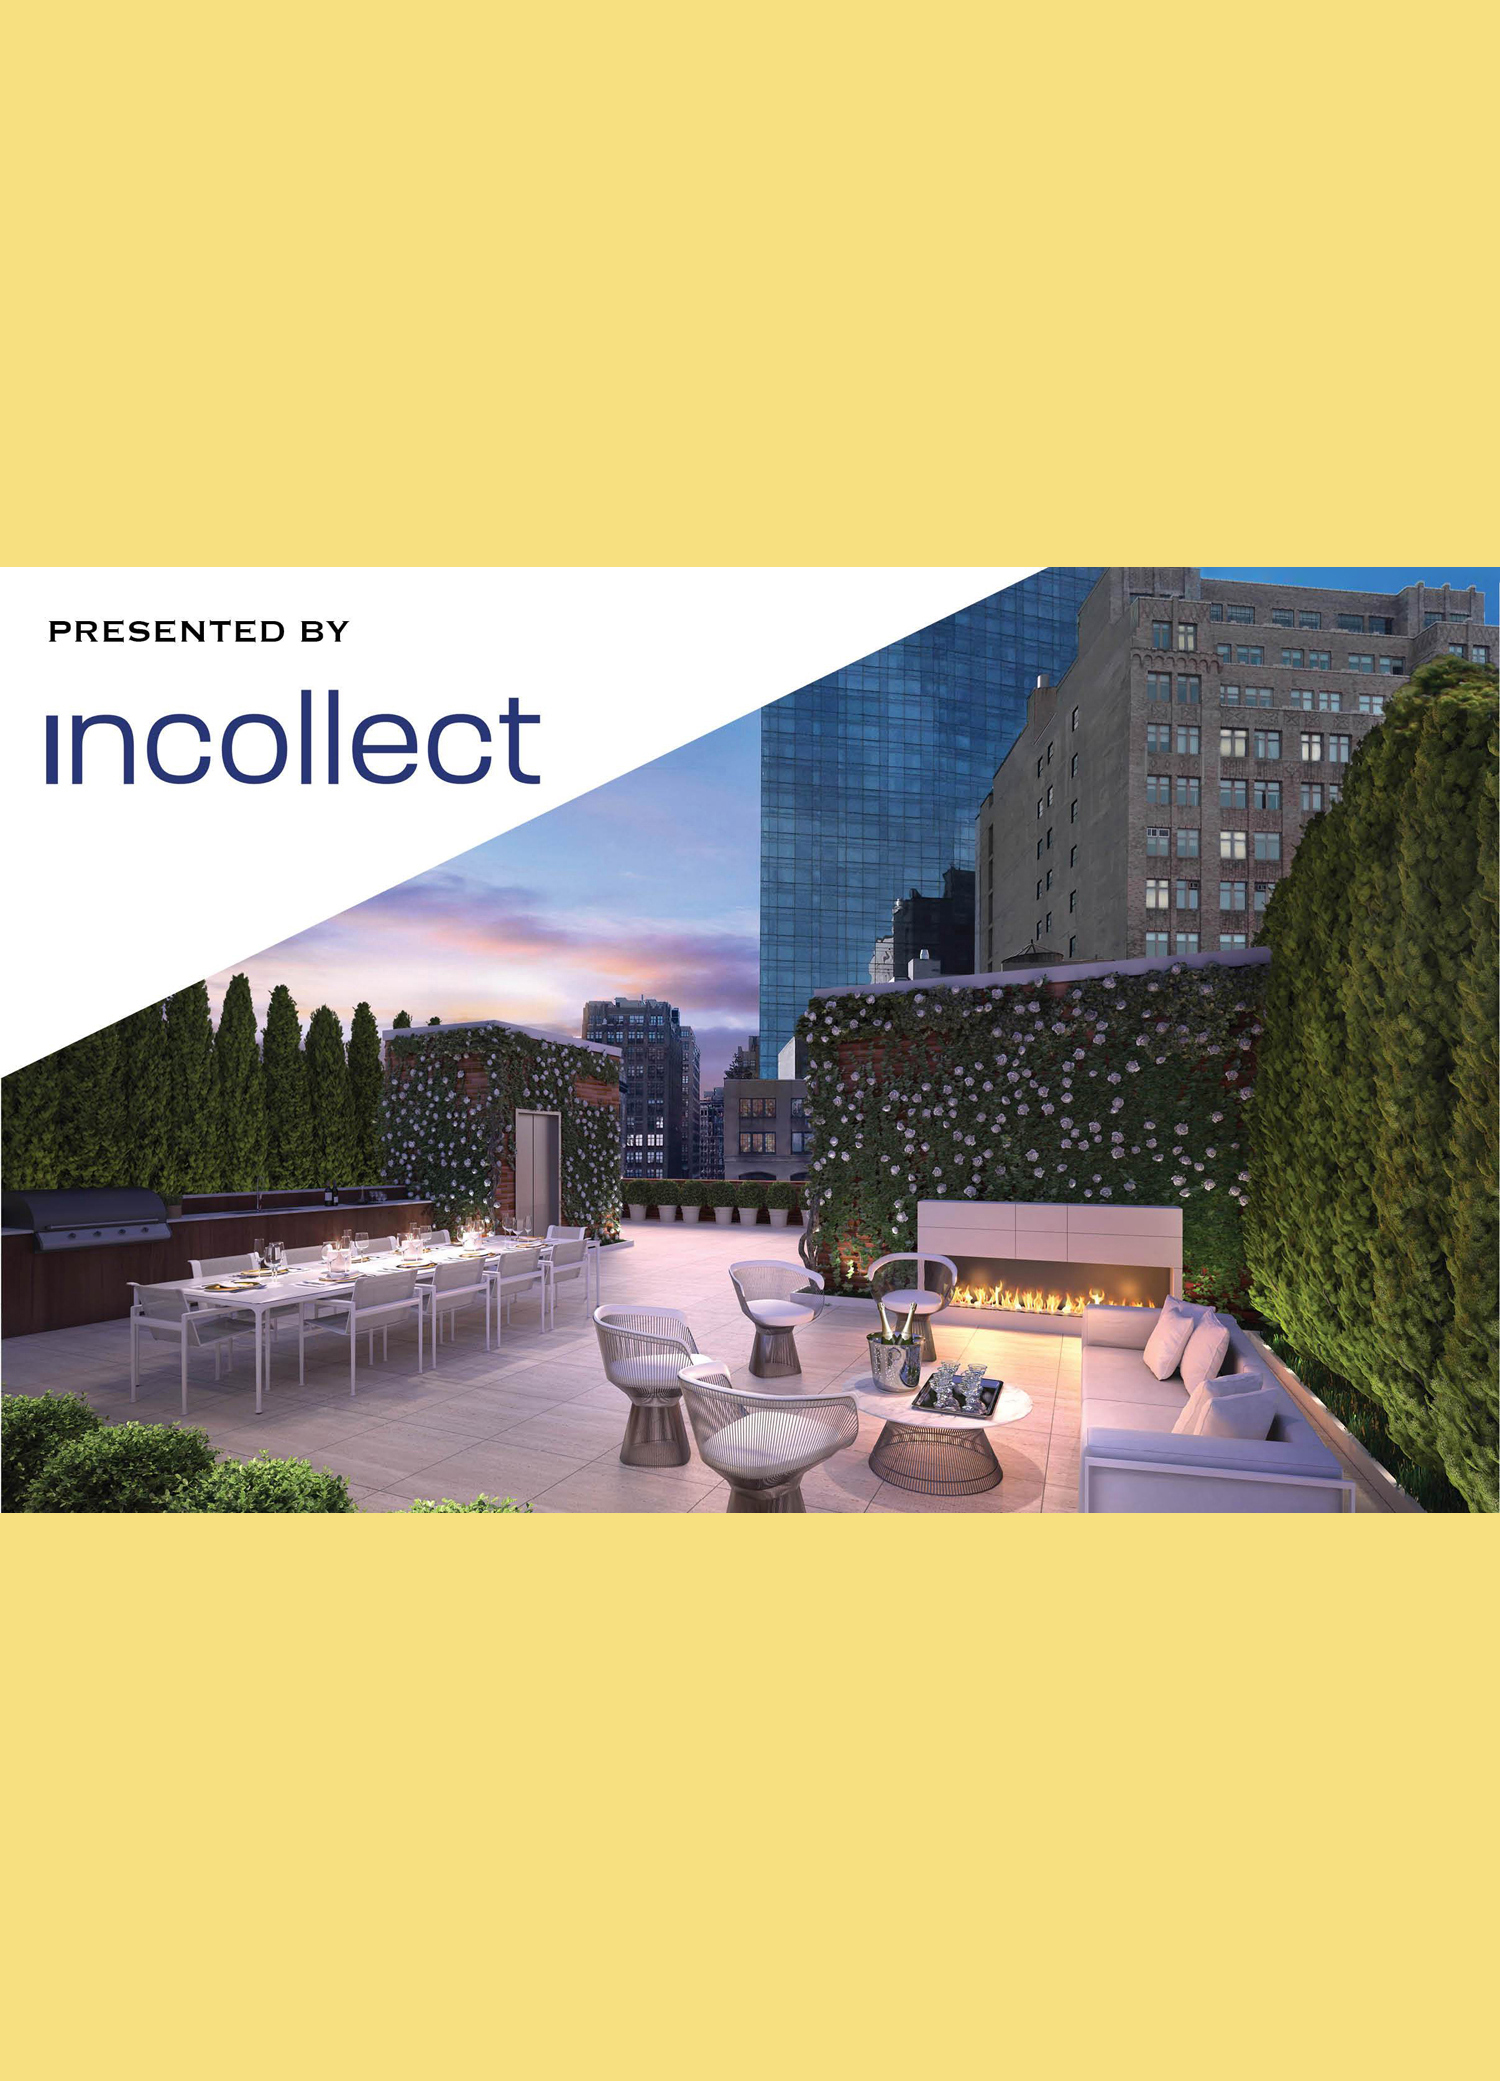 Incollect-Banner 5.jpg